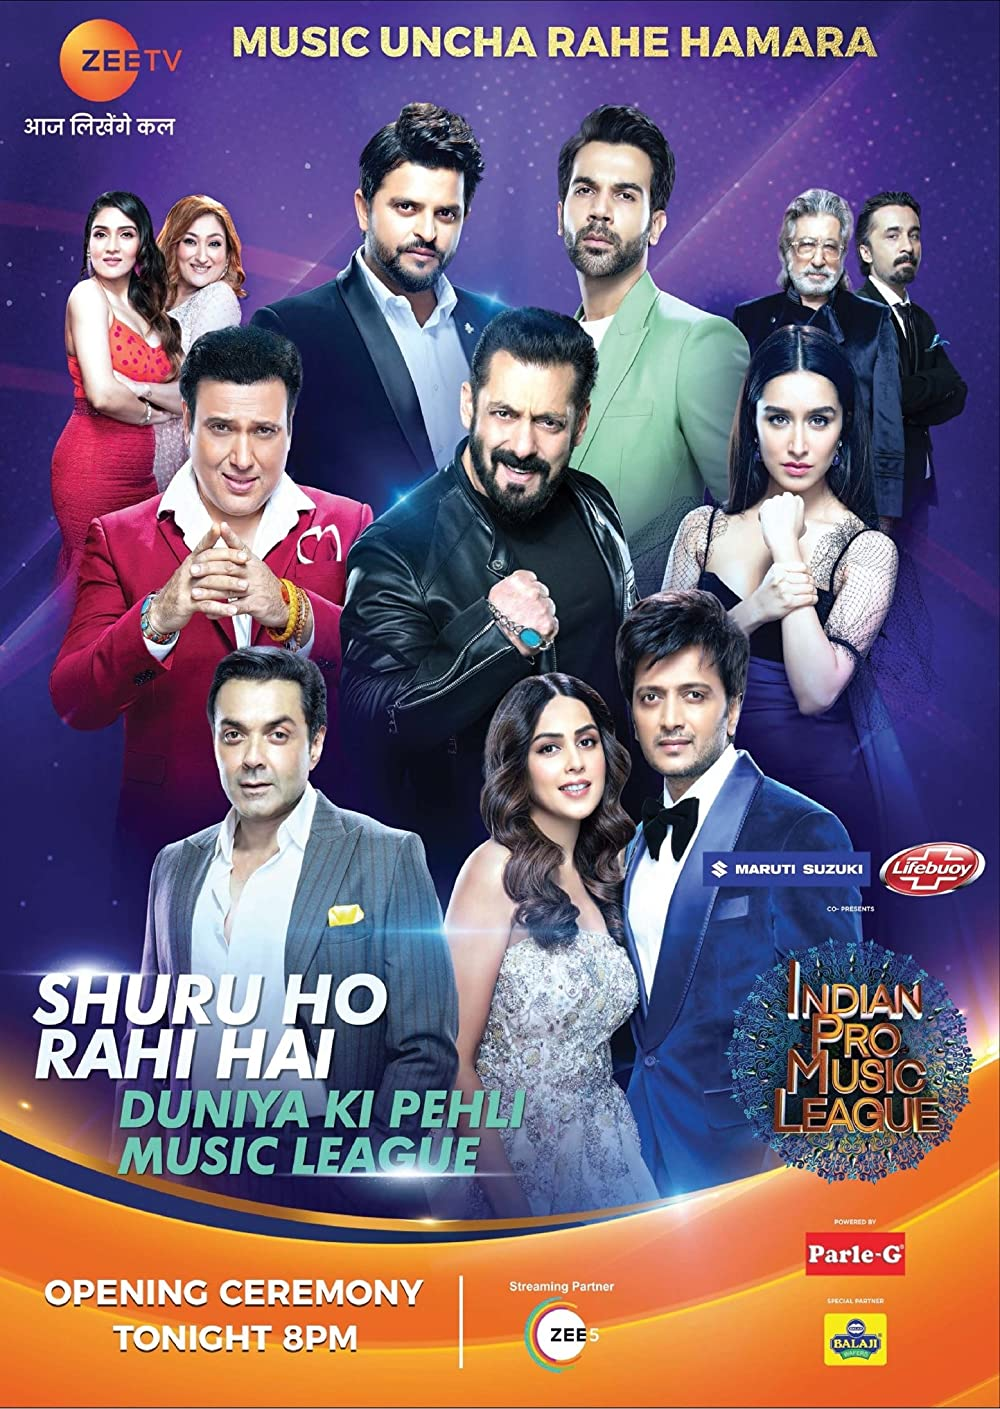 Indian Pro Music League S01EP02 27th February 2021 Hindi 480p HDRip 300MB